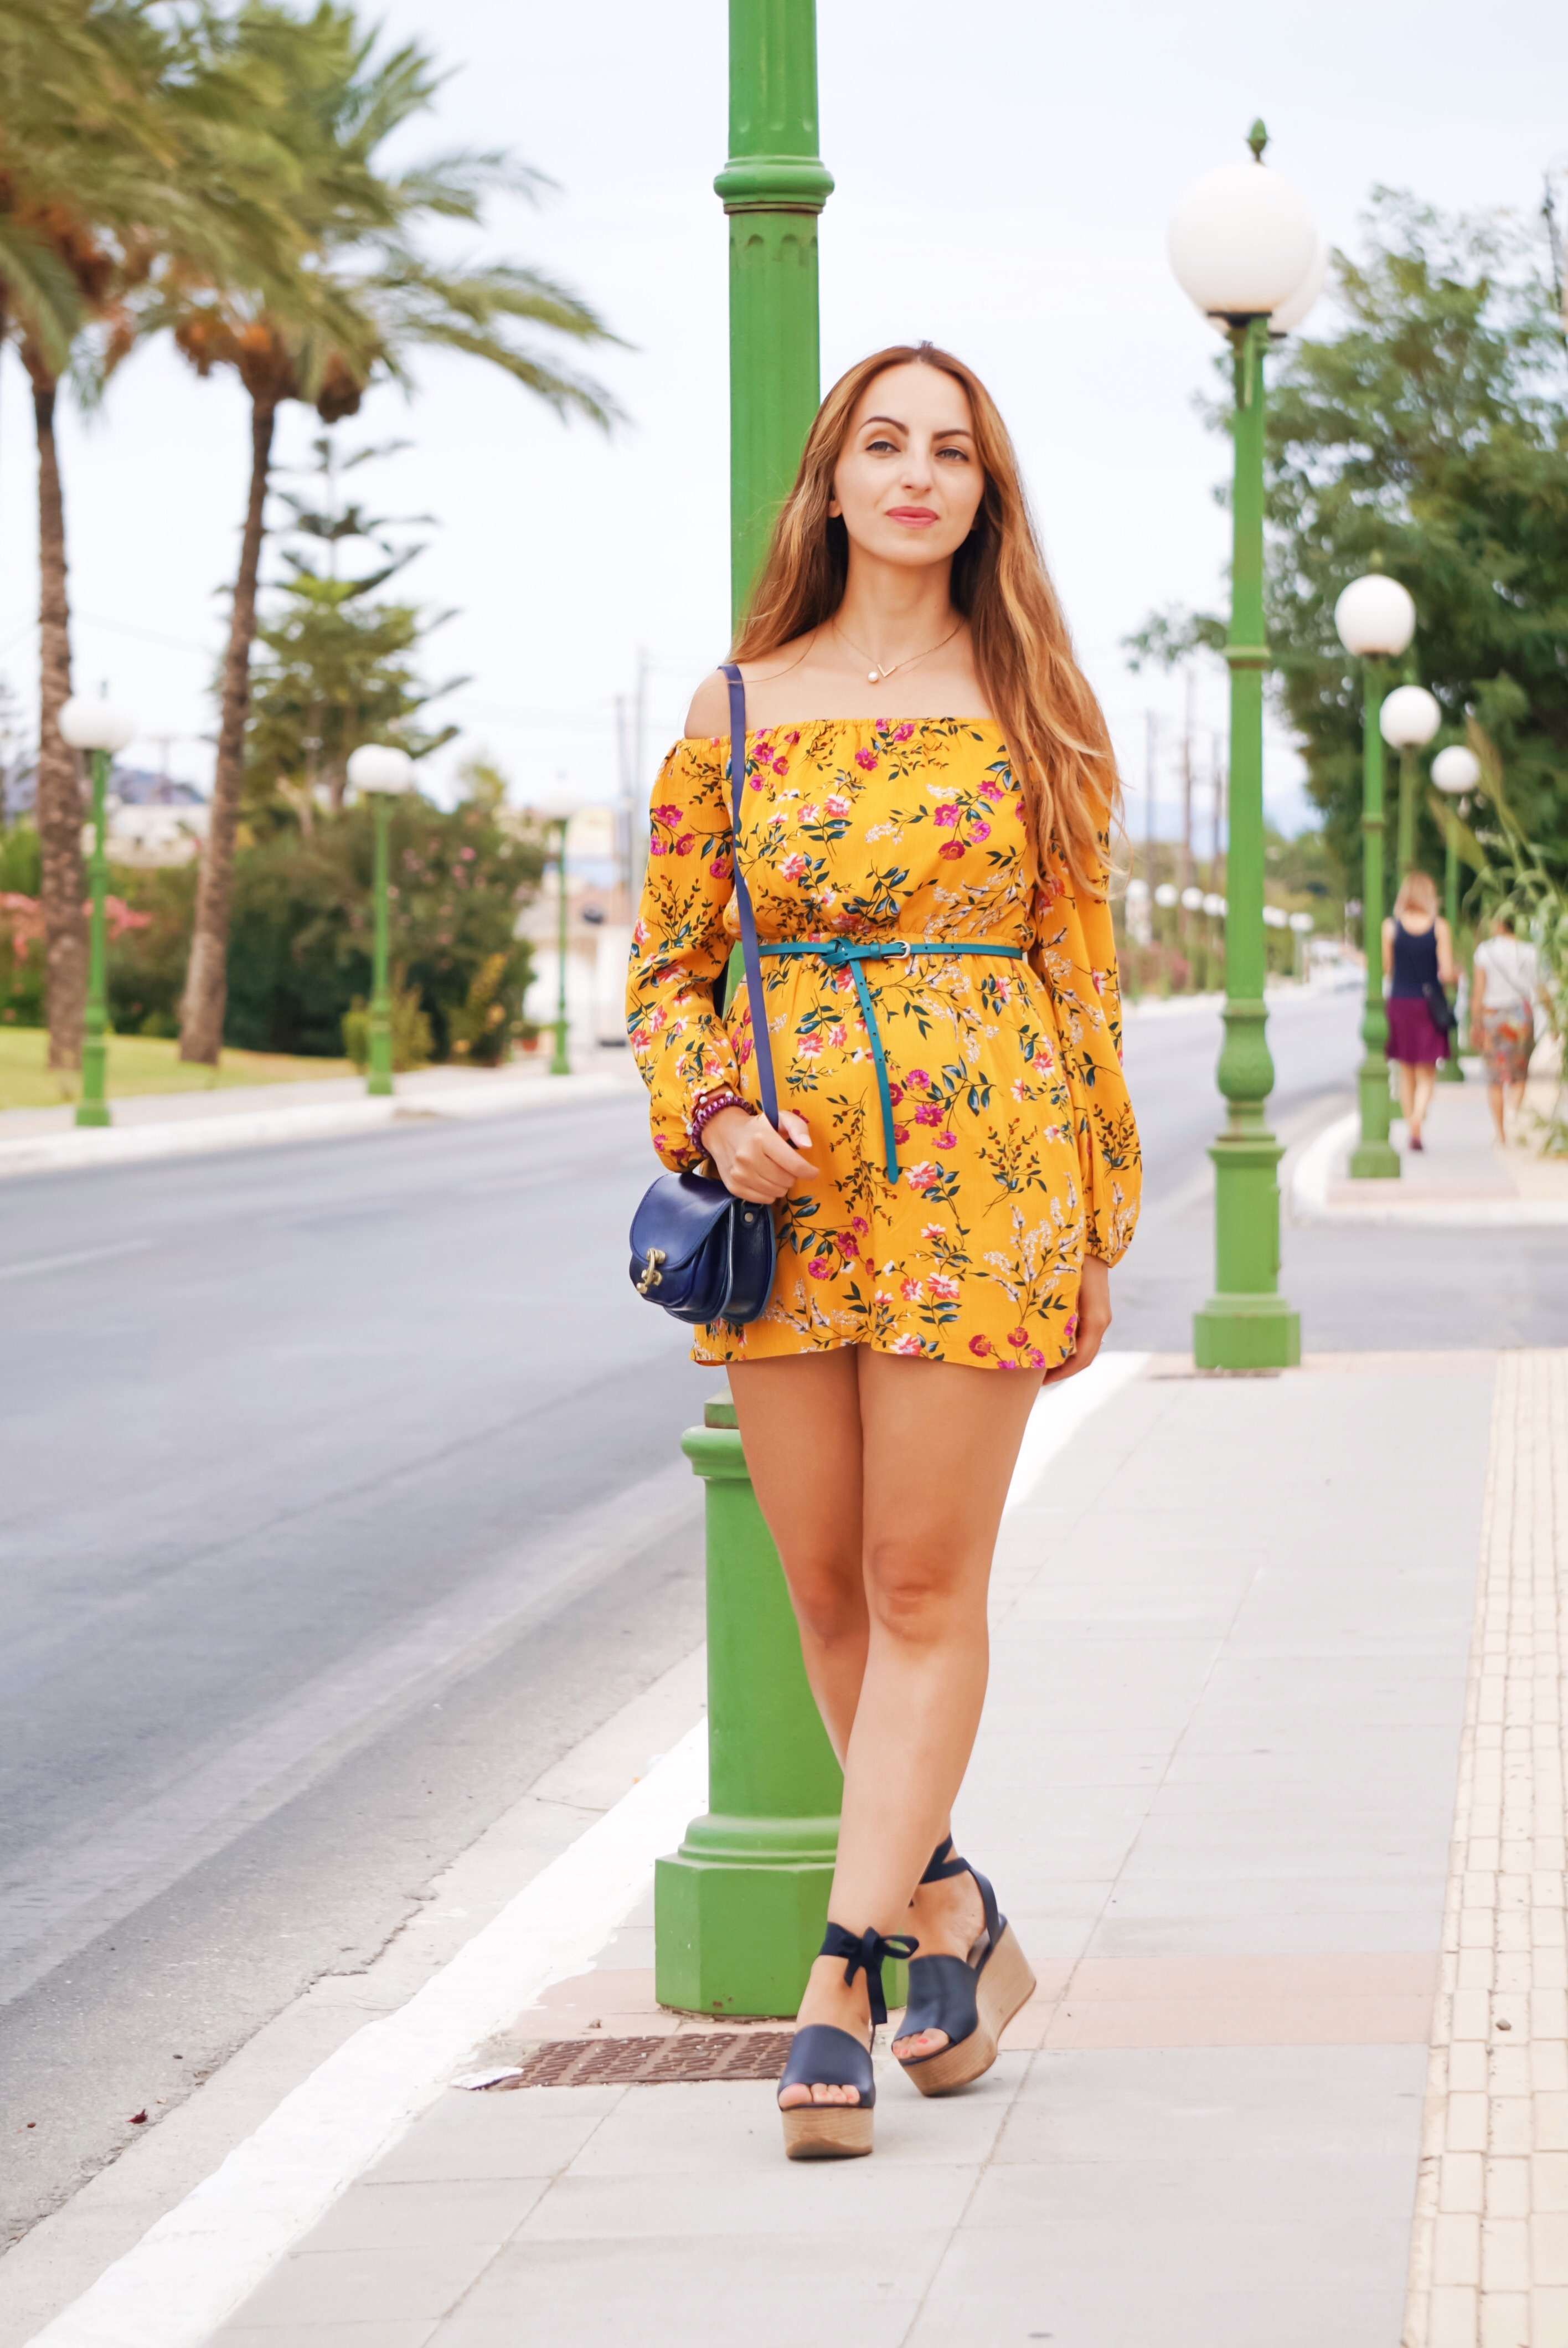 Chania-Crete-Fashionblogger-Outfit-Post-10